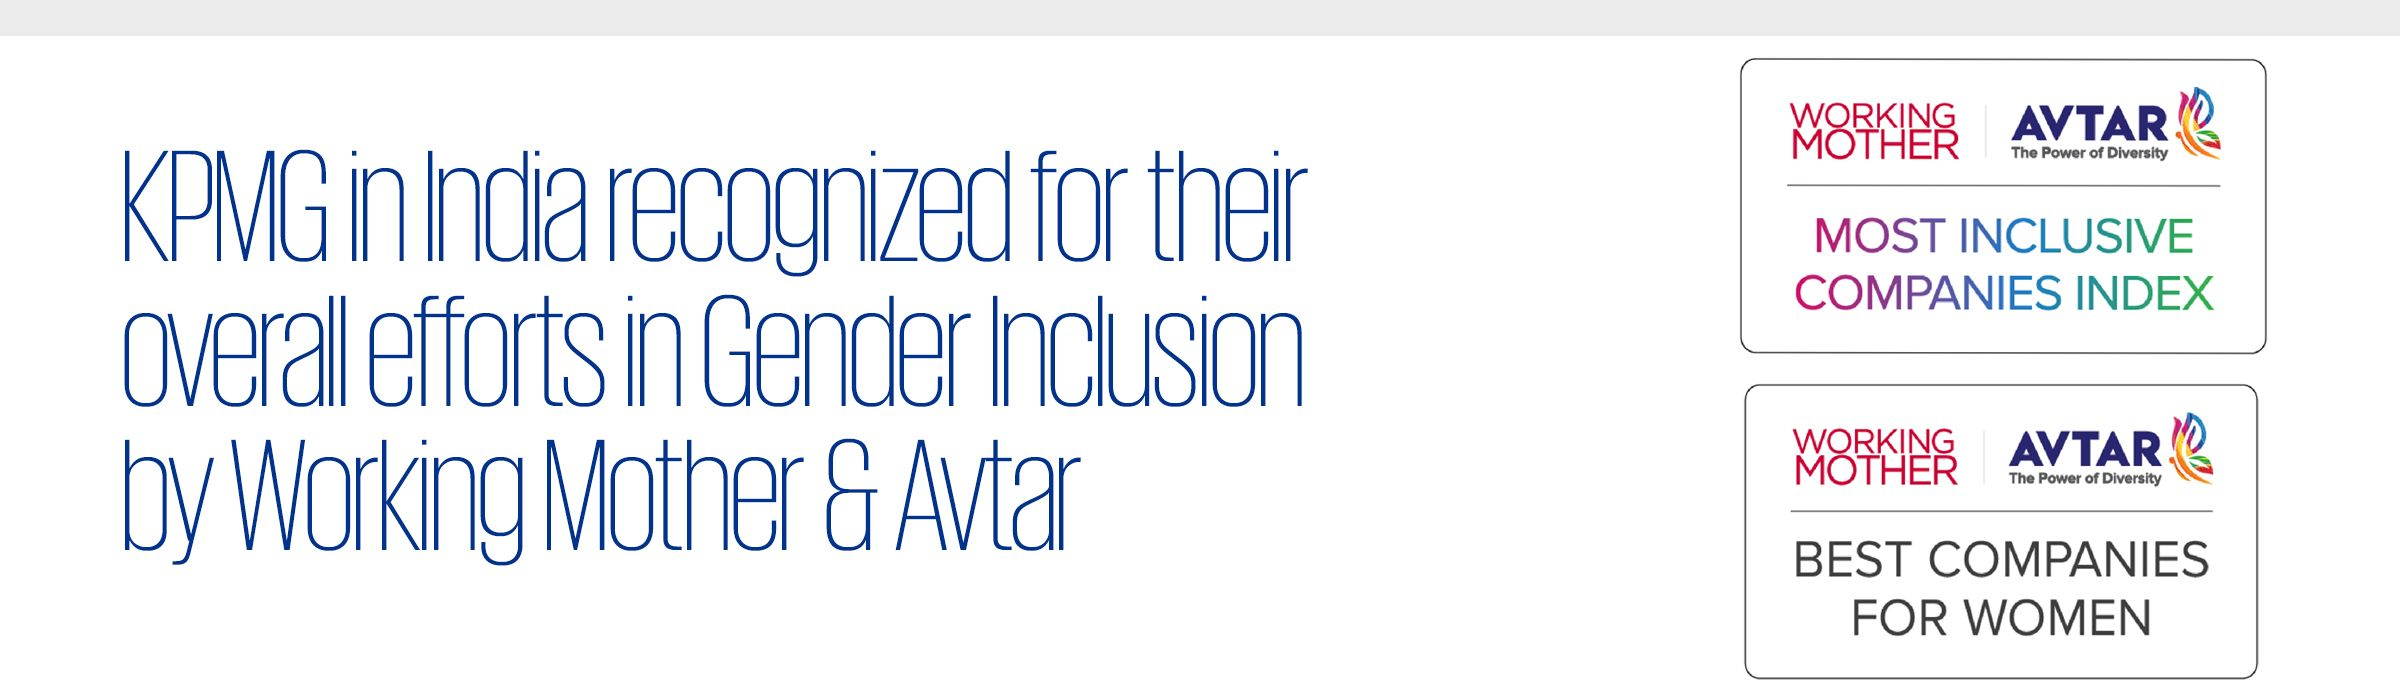 KPMG in India recognized for their overall efforts in Gender Inclusion